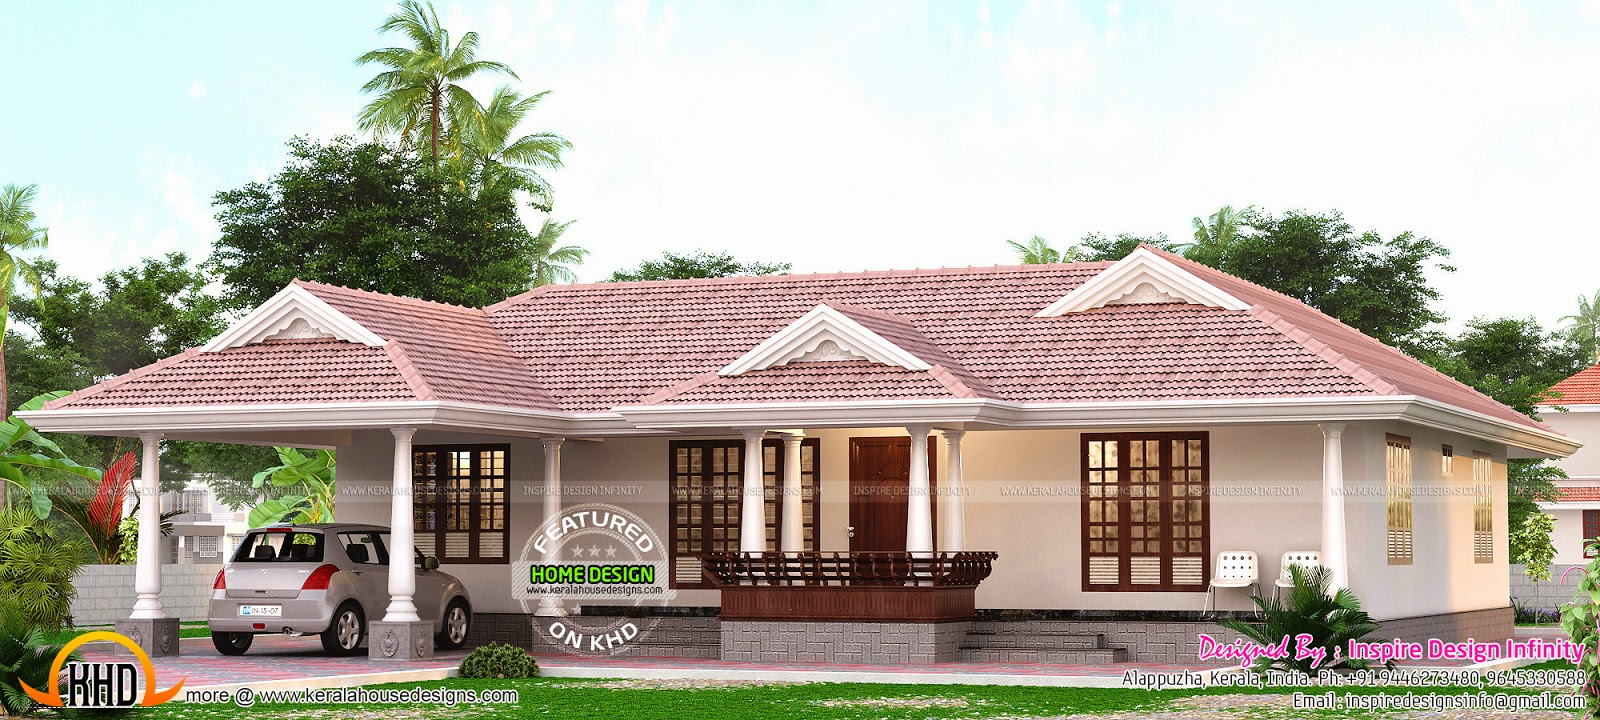 Kerala model single storied home kerala home design and for Kerala style 2 bedroom house plans